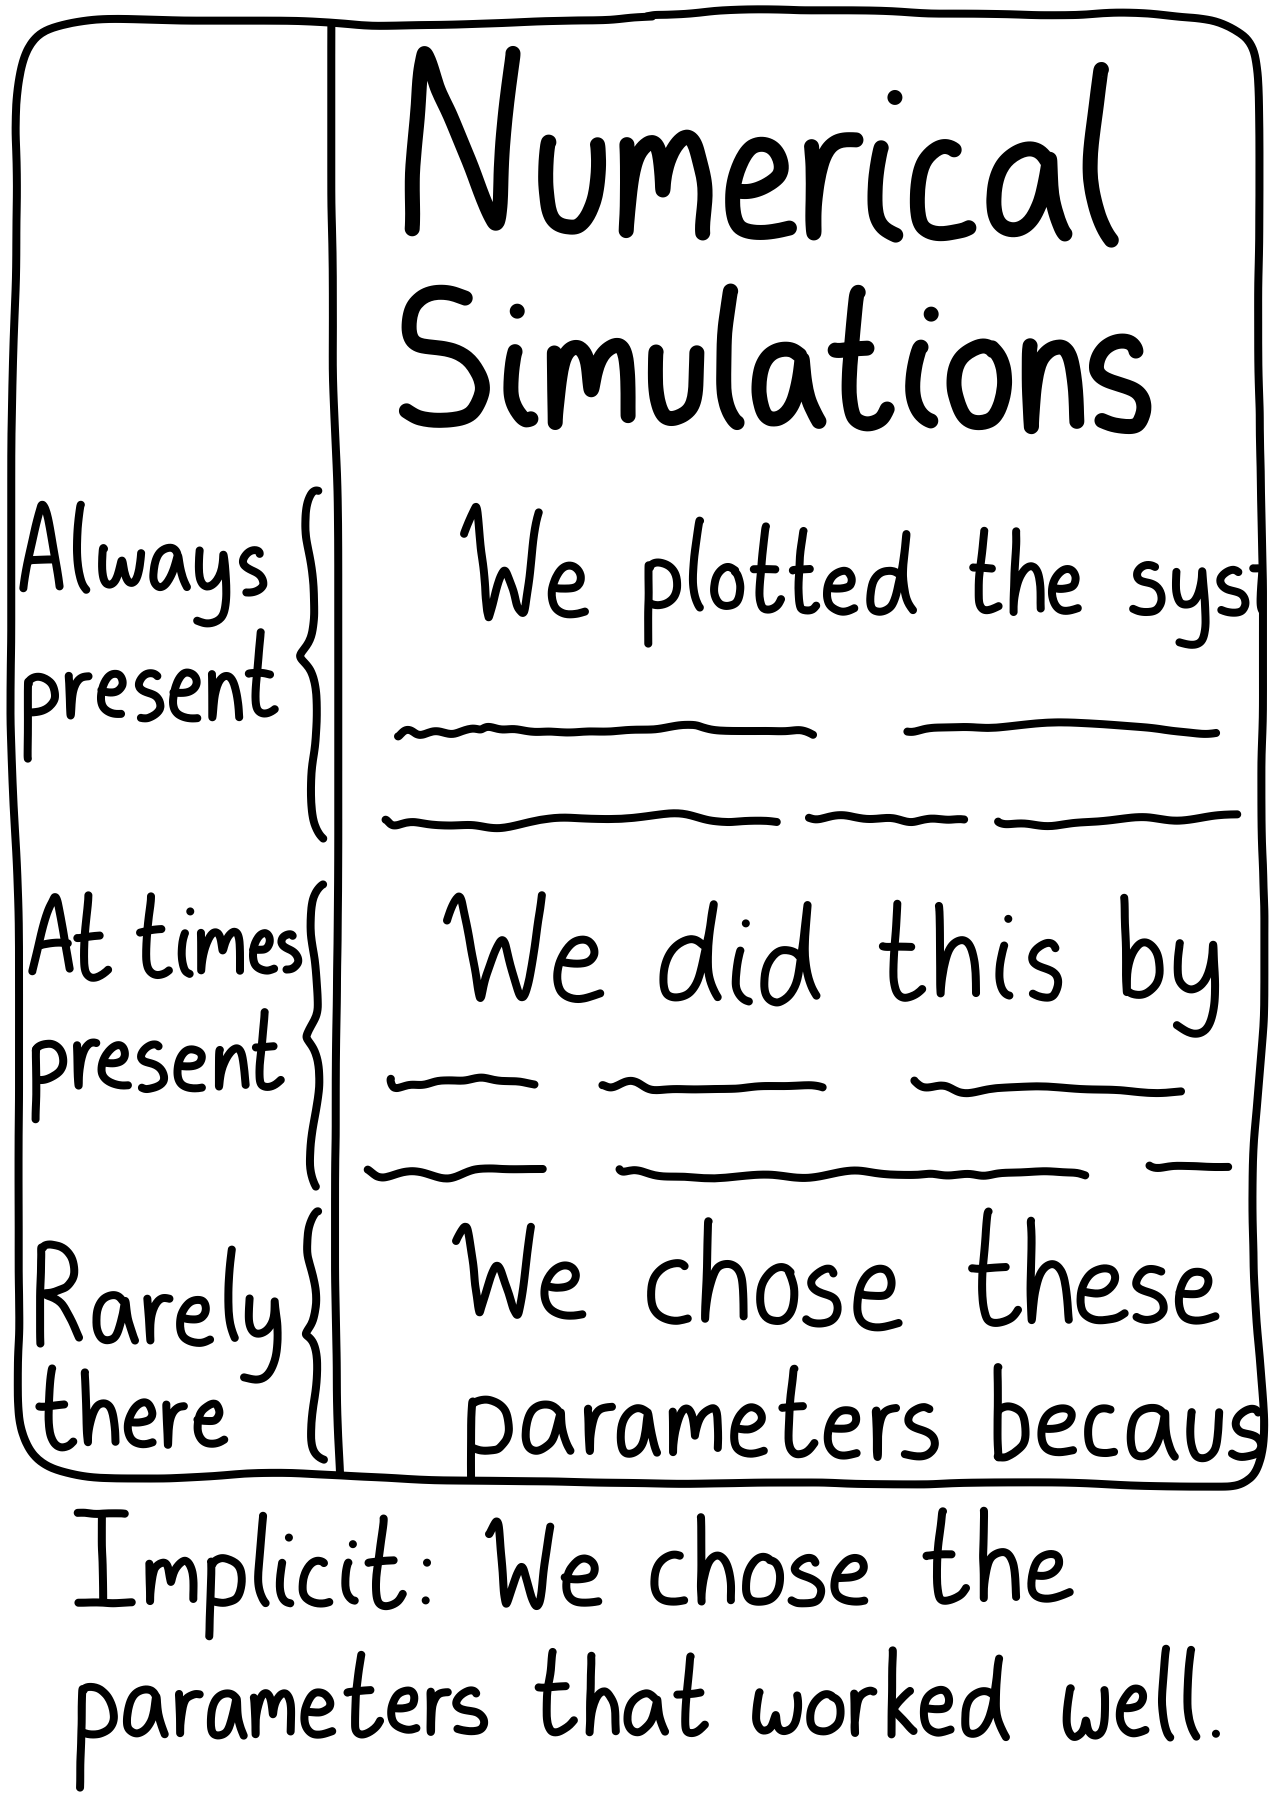 A section of a paper on numerical simulations. Authors will always talk about what they plotted, sometimes talk about how they did things, and rarely give details on why they chose the parameters they did.